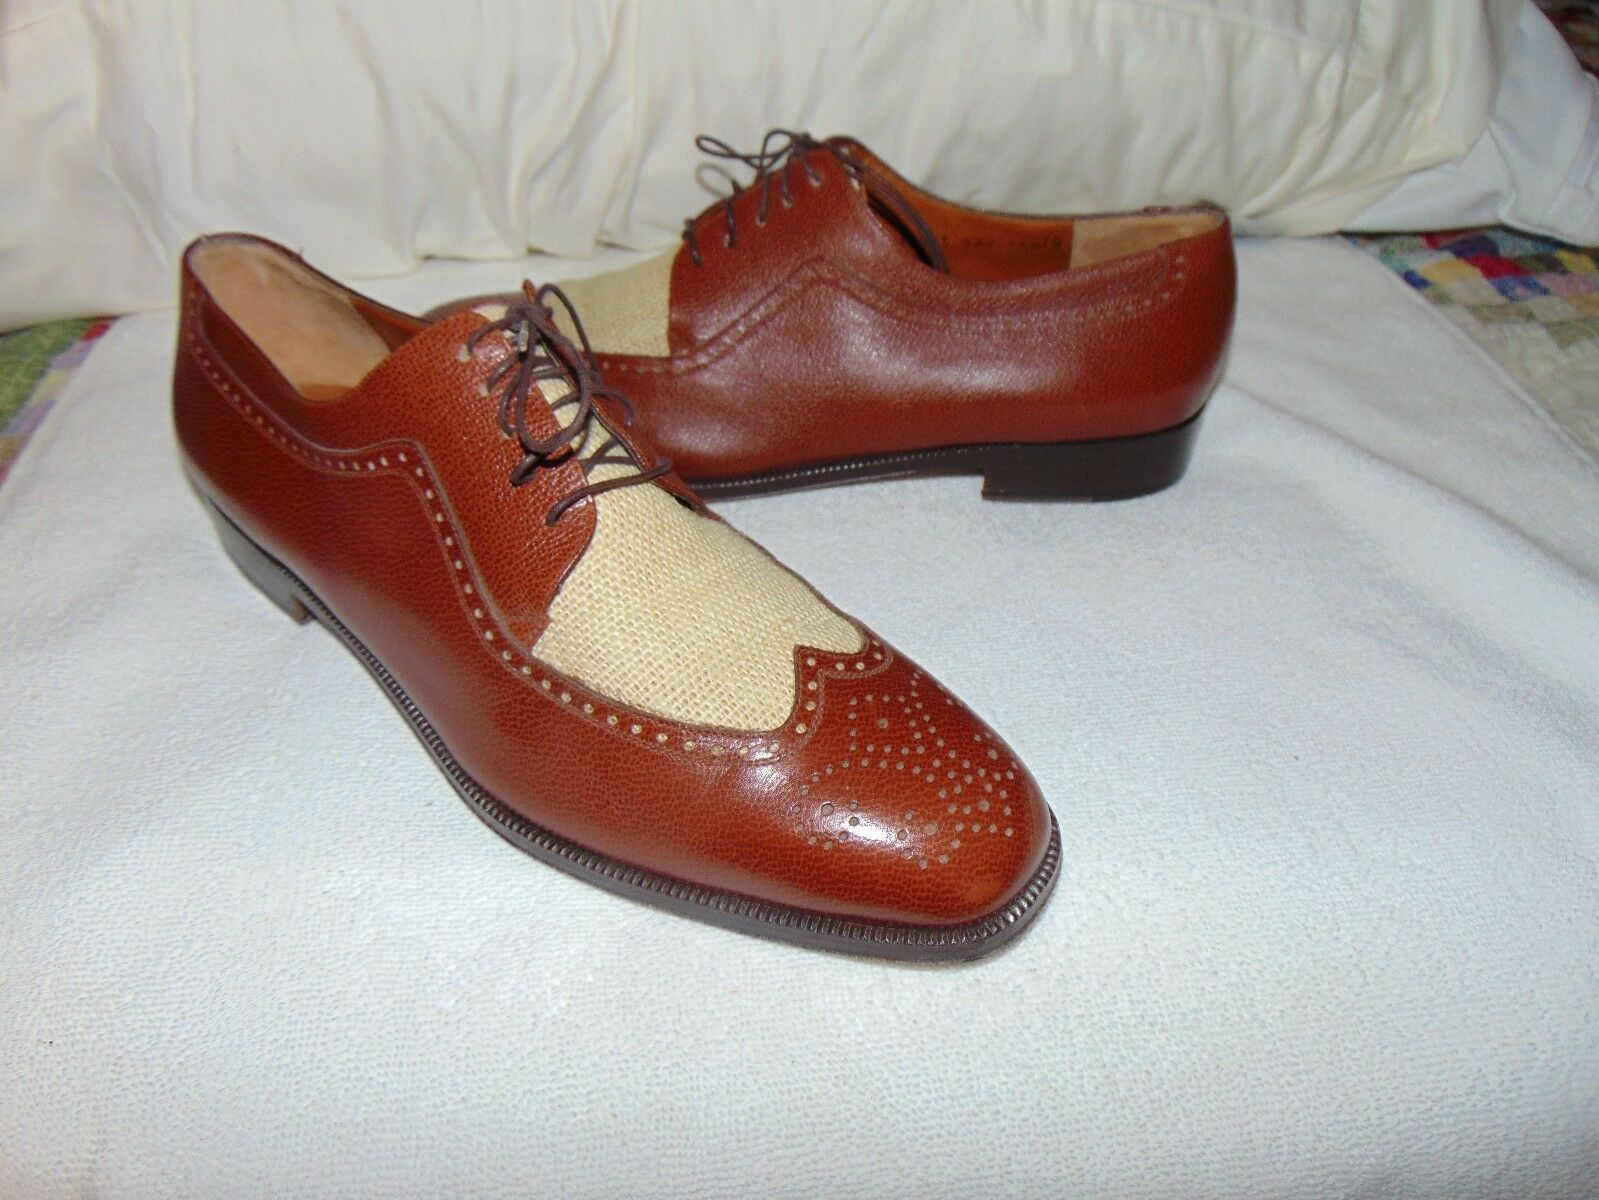 Salvatore Ferragamo Dress Oxfords Leather Sole Shoes Wingtips Balmoral  11.5 D T